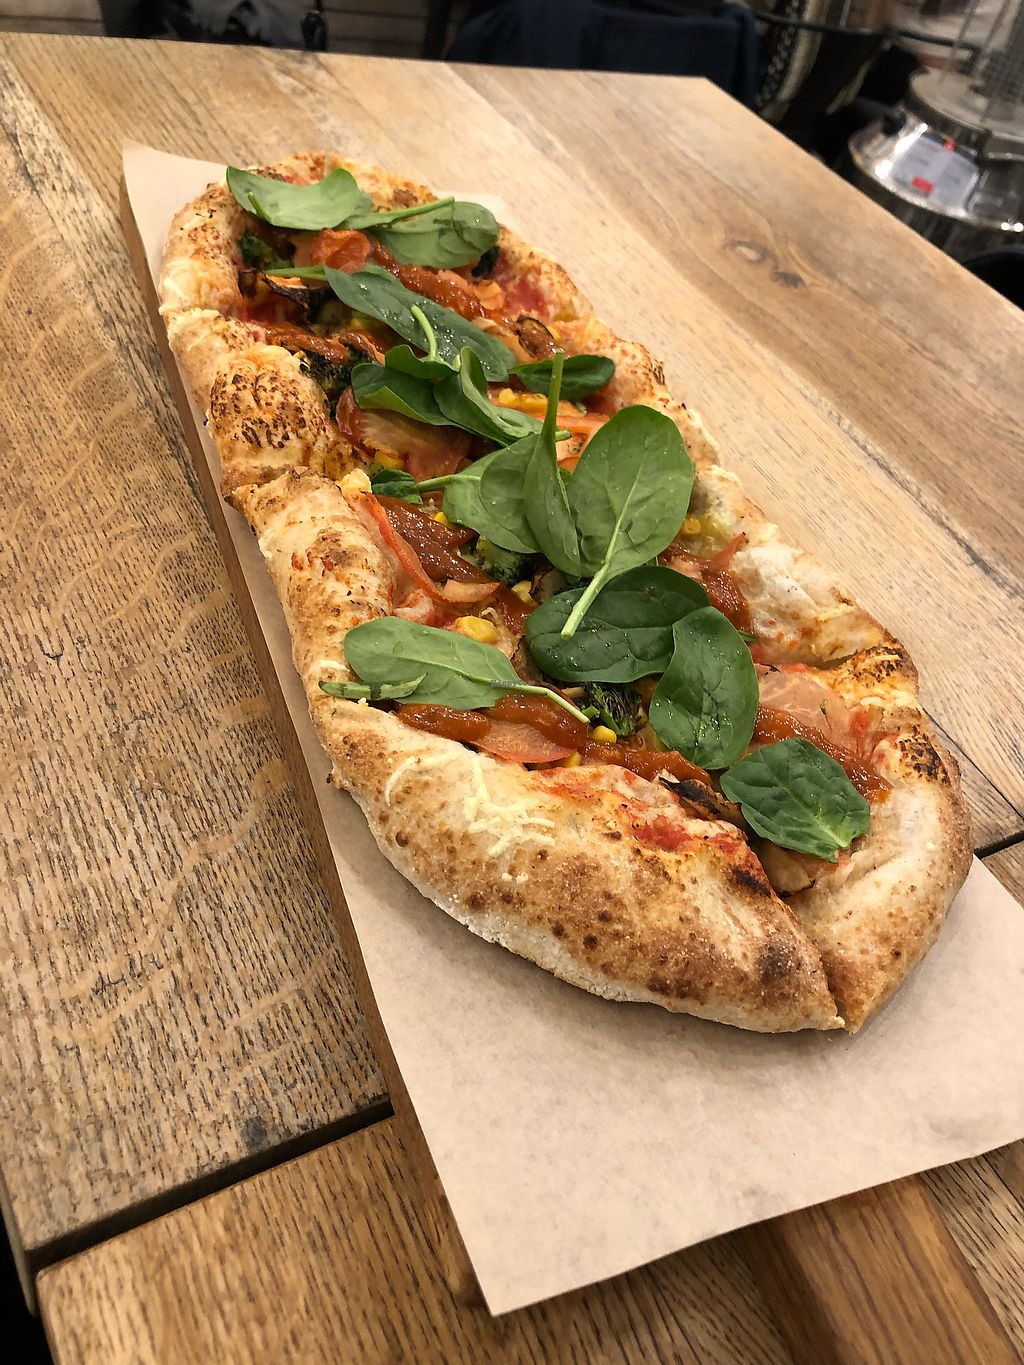 """Photo of Pizzatopia  by <a href=""""/members/profile/ffion"""">ffion</a> <br/>Whole meal dough with v-cheese, tomatoes, sweetcorn, broccoli and fresh spinach  <br/> March 13, 2018  - <a href='/contact/abuse/image/97708/370328'>Report</a>"""